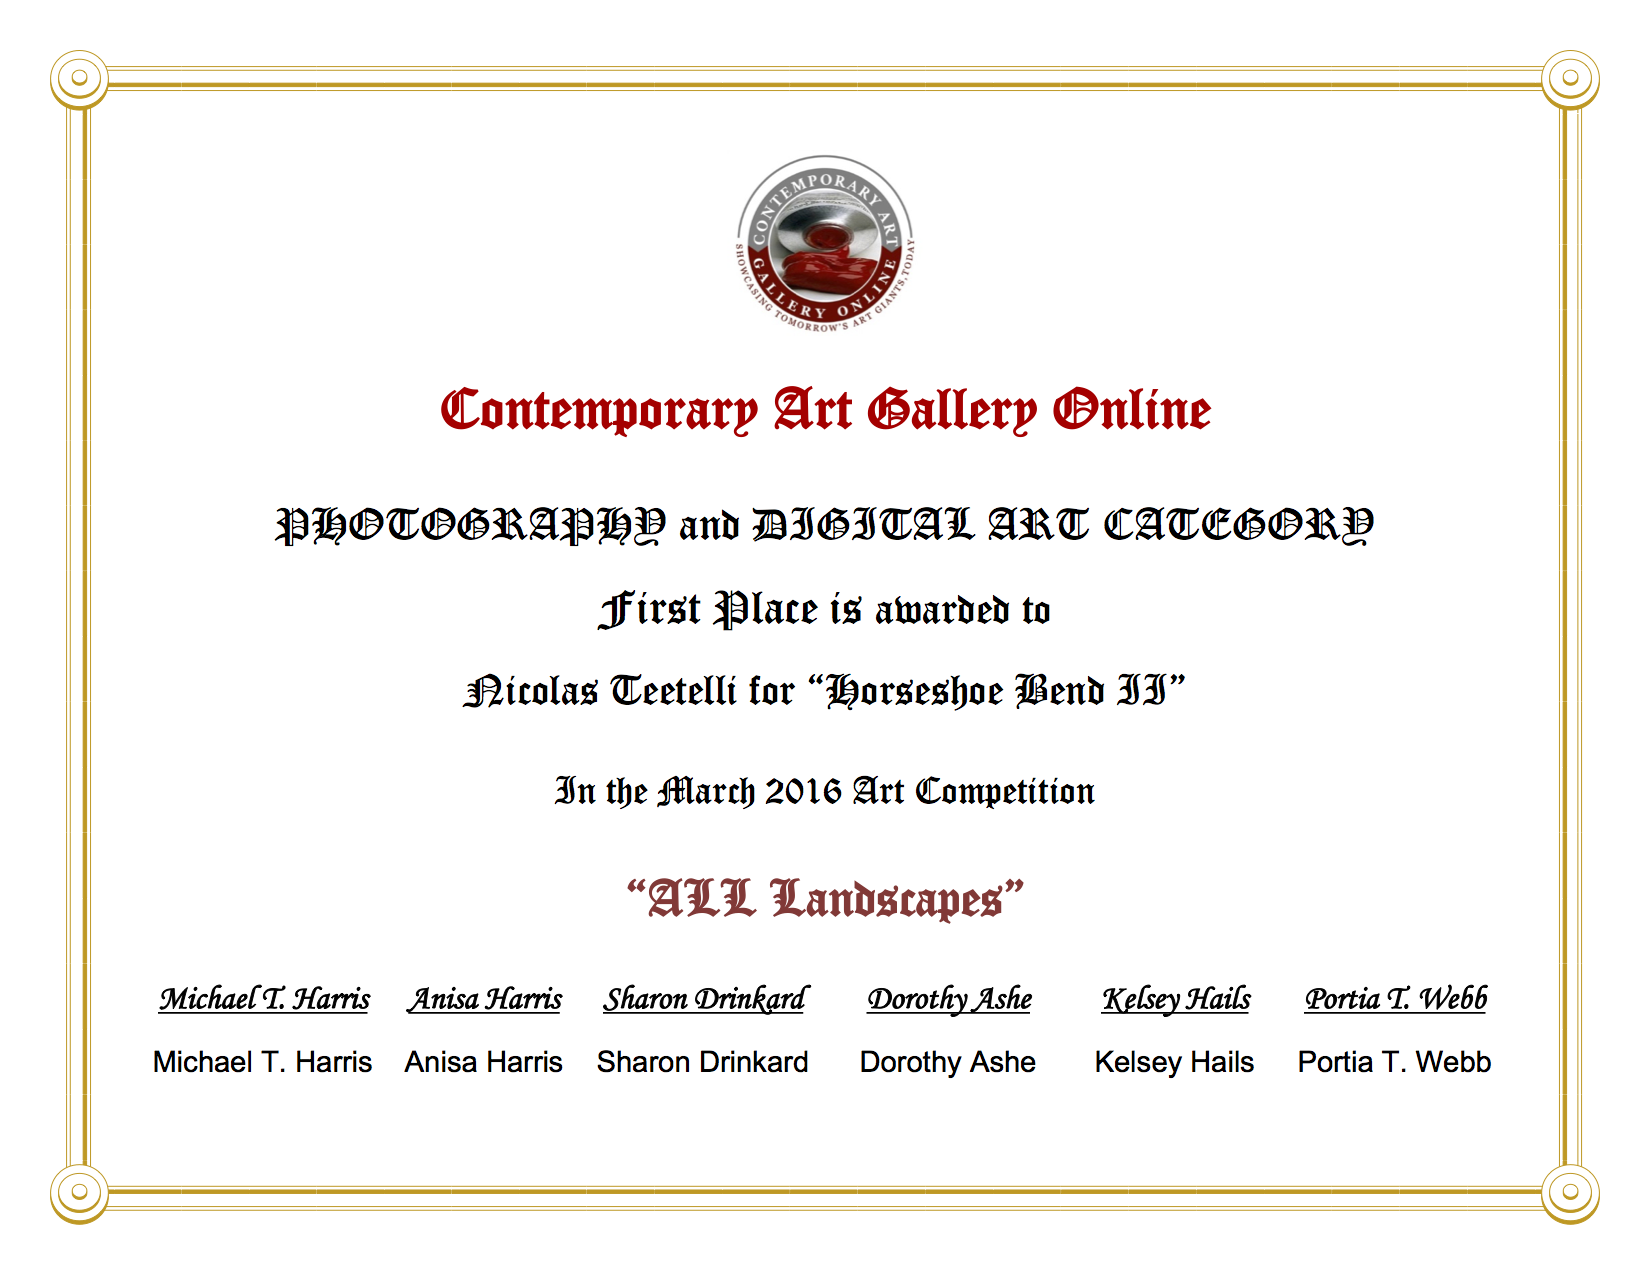 2016-03 Contemporary Art Gallery - Horseshoe Bend II - 1st Place - Teetelli.png